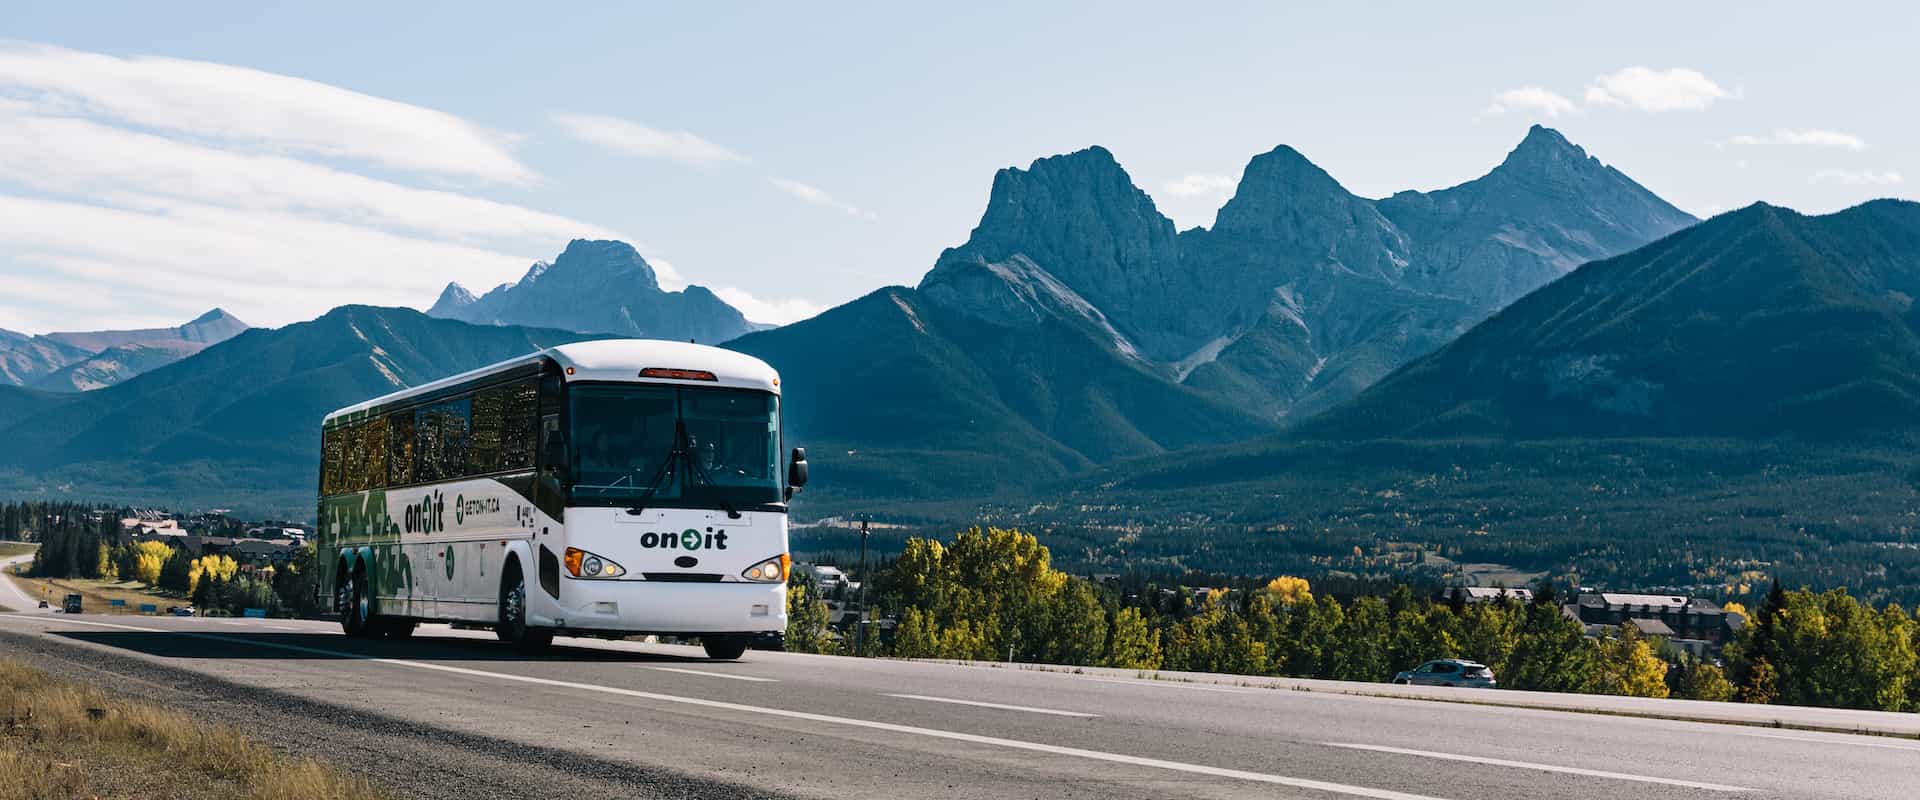 On-It Bus from Calgary to Banff